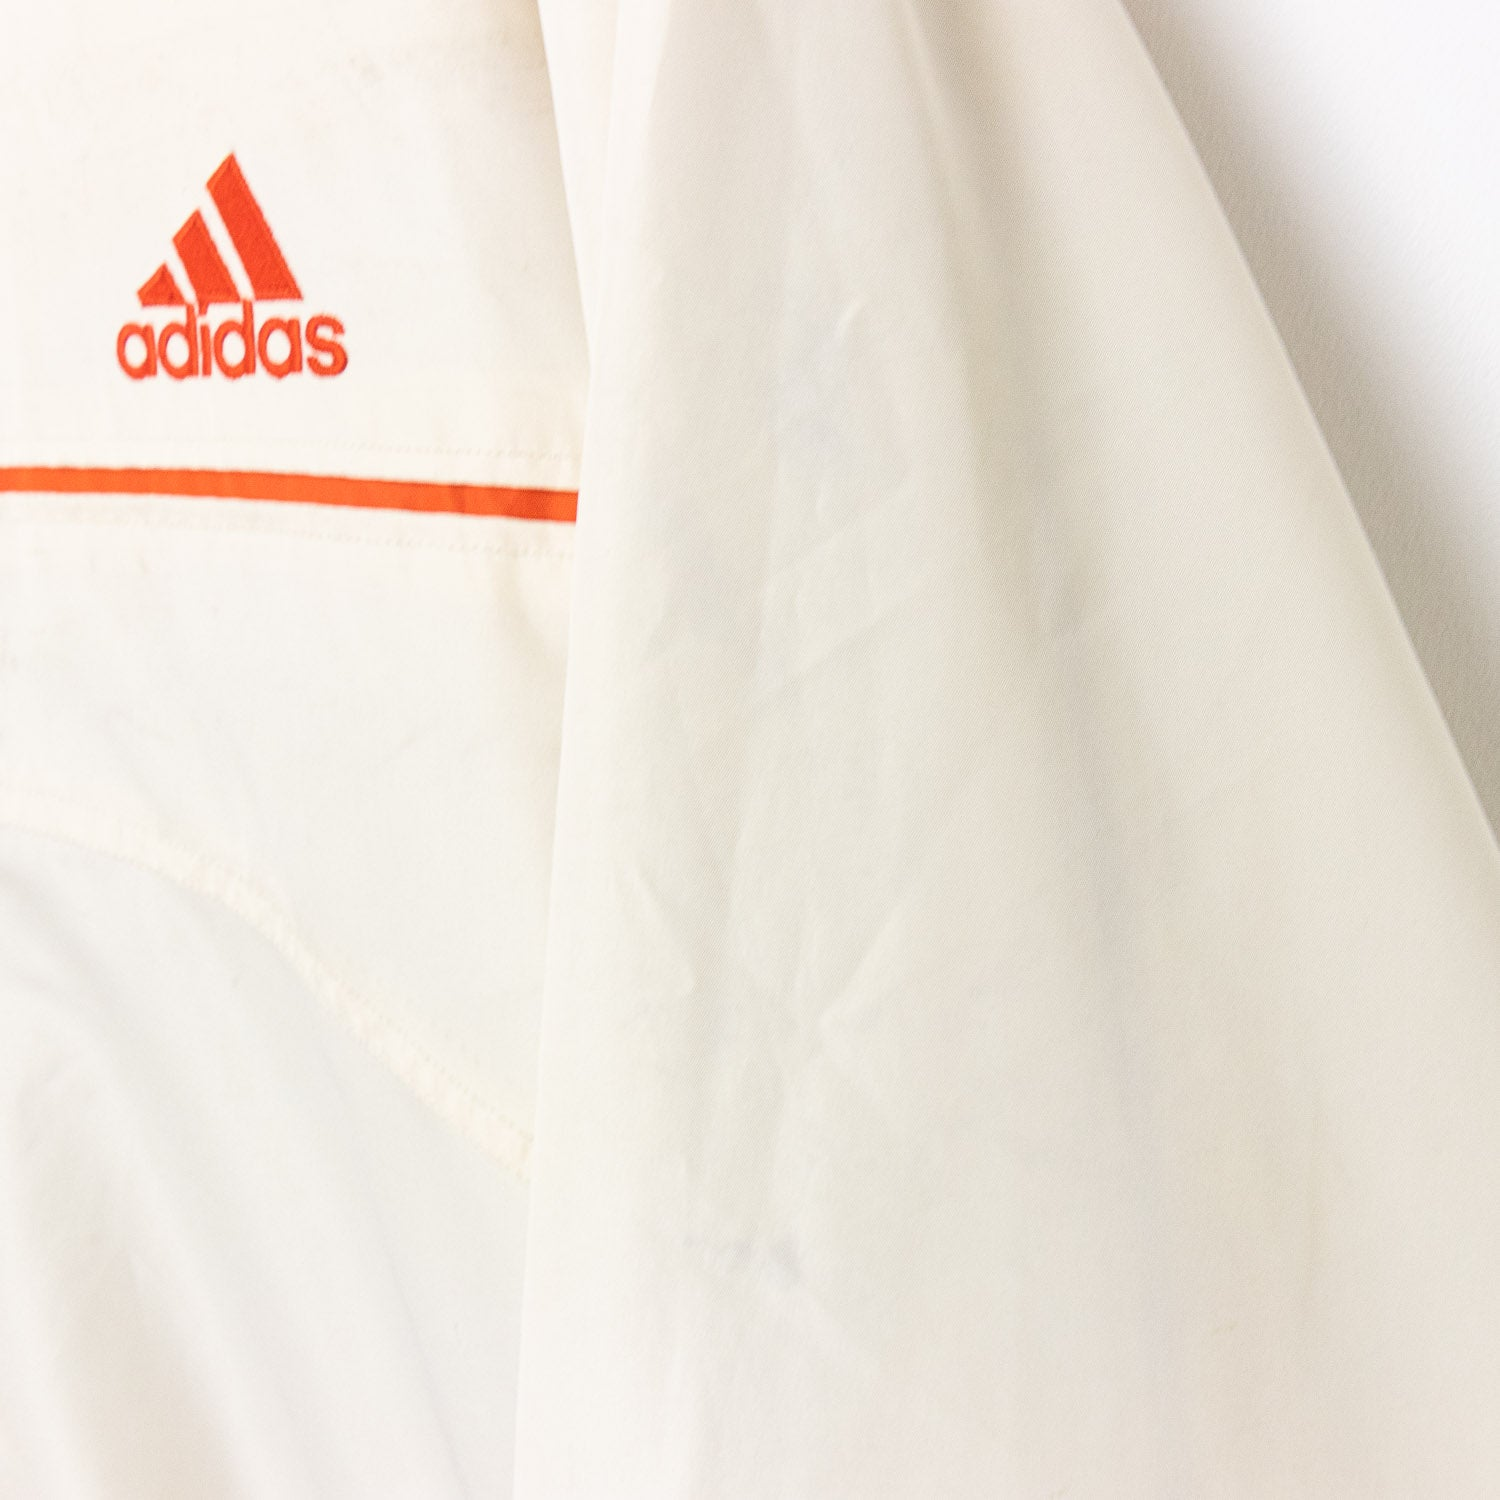 Adidas Sweatshirt Red/Grey Medium